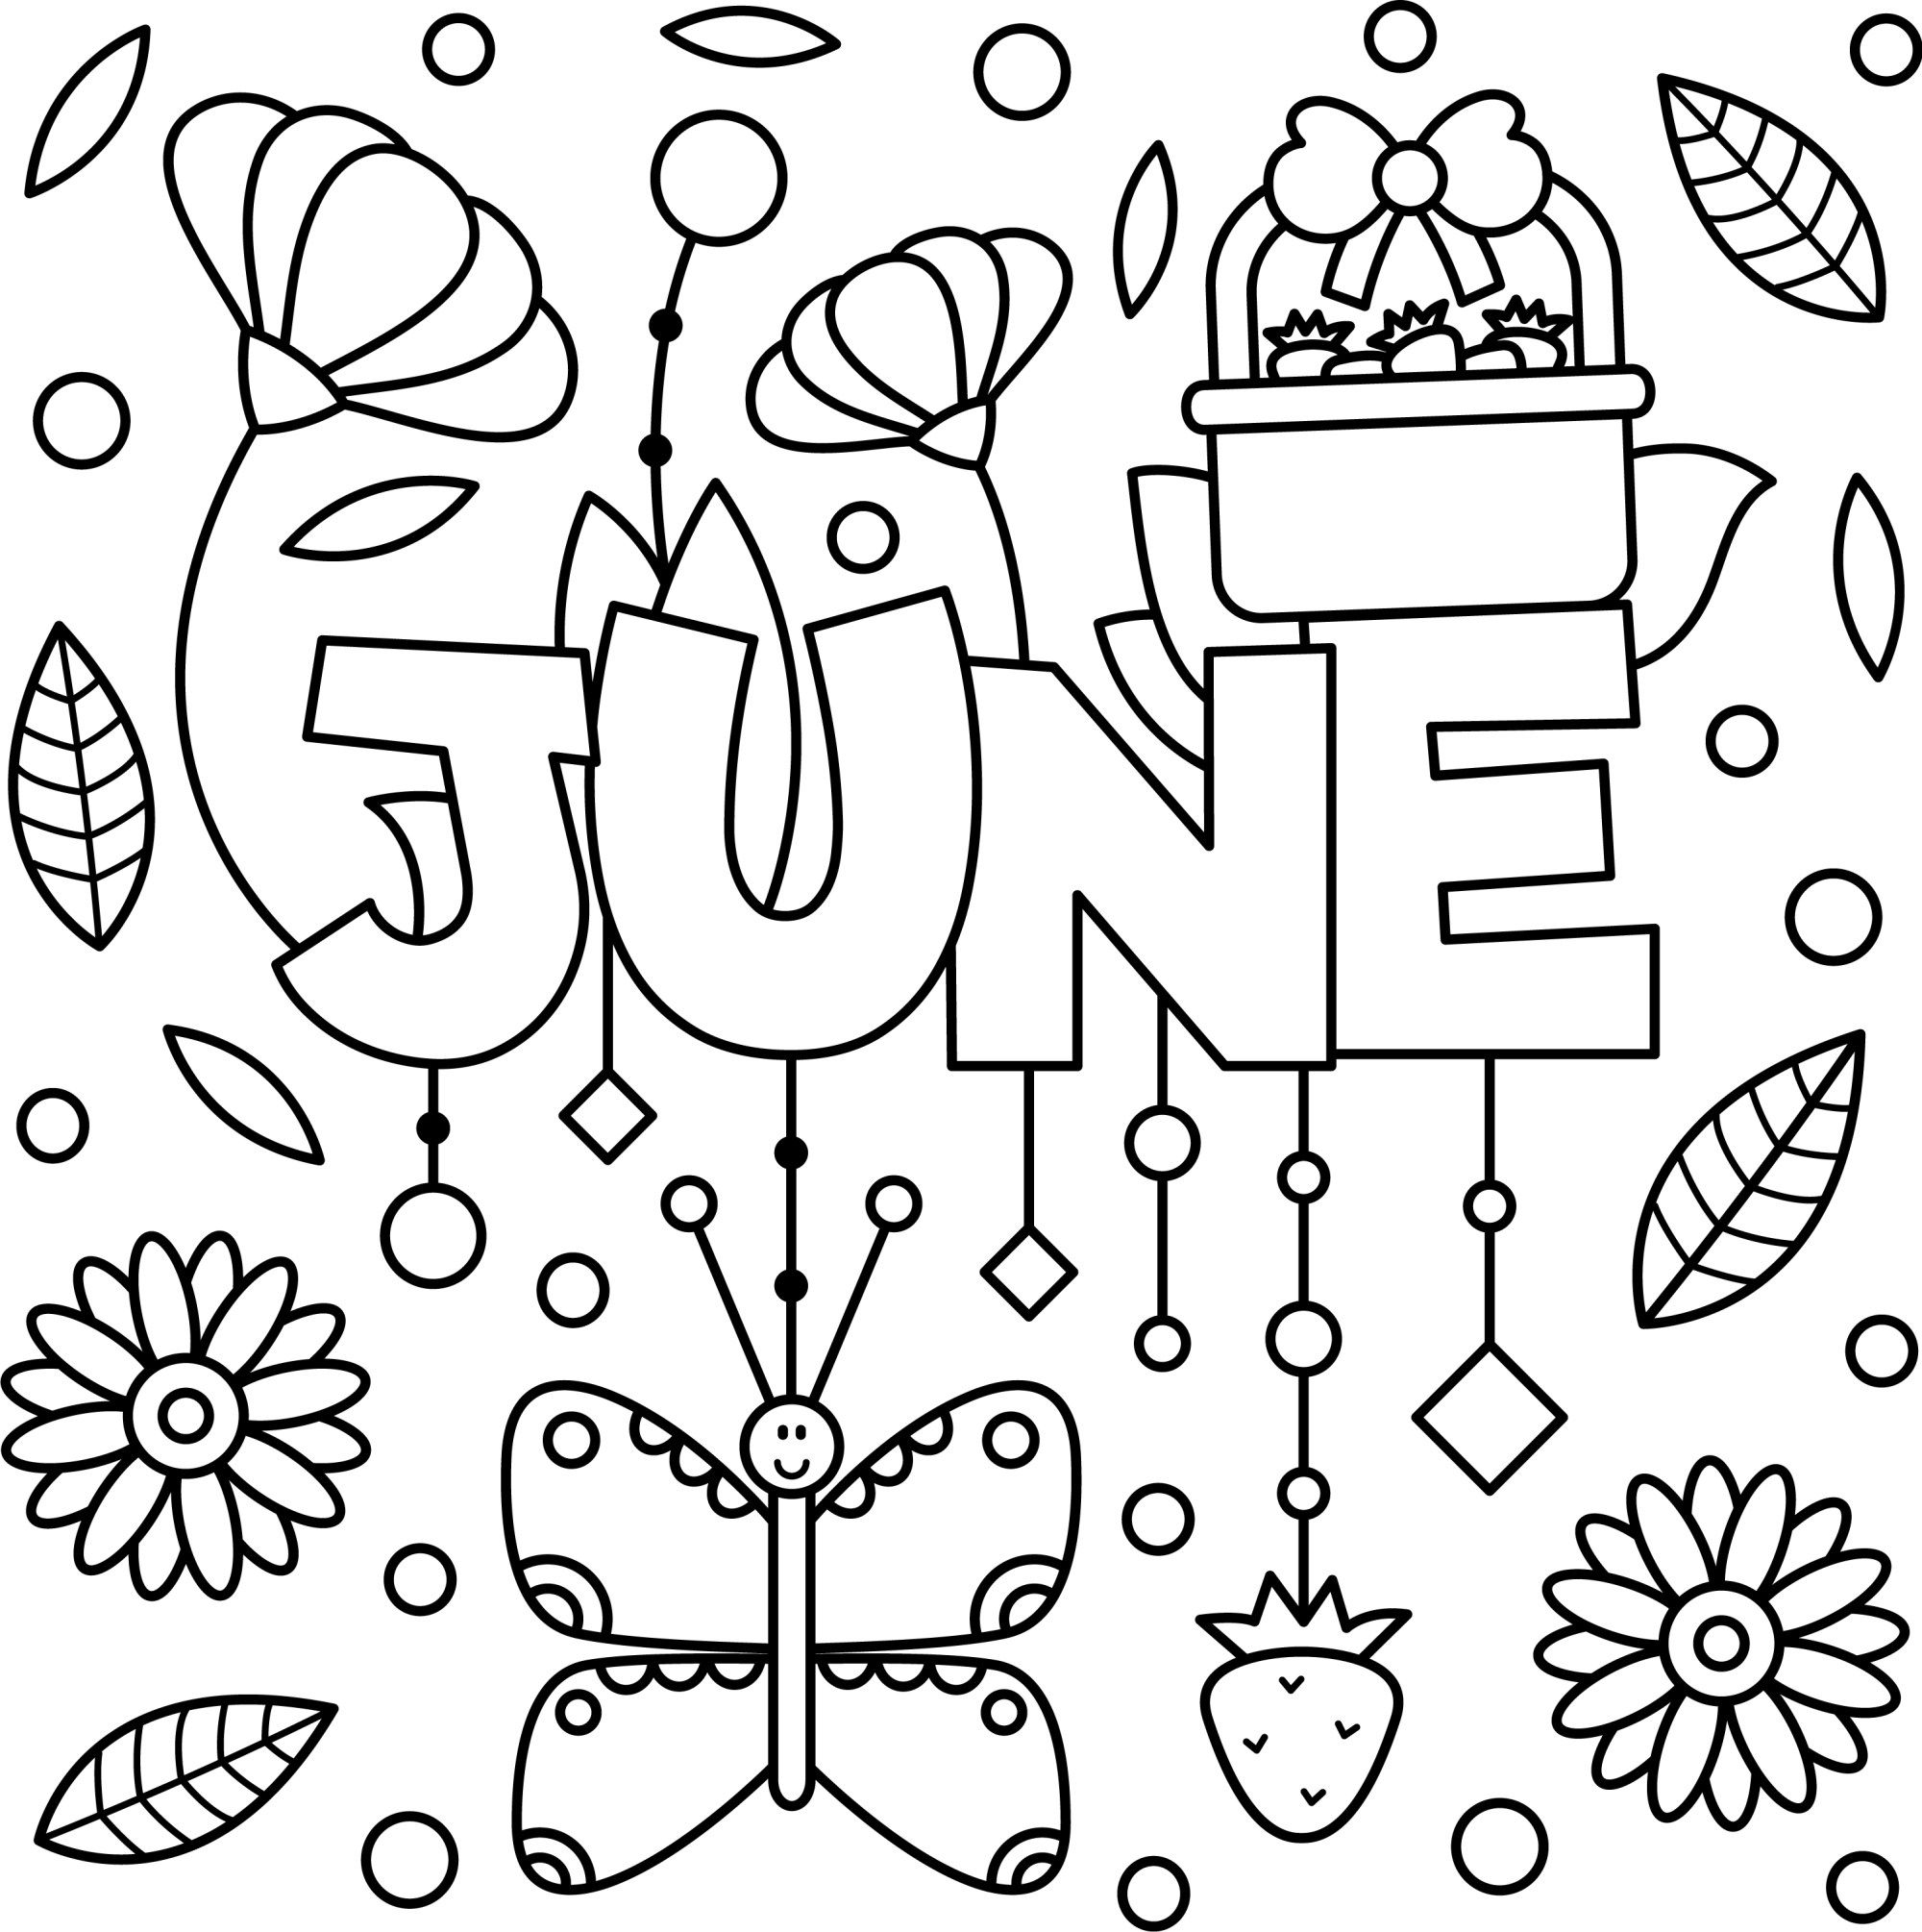 Cheery June Coloring Page Printable With Images